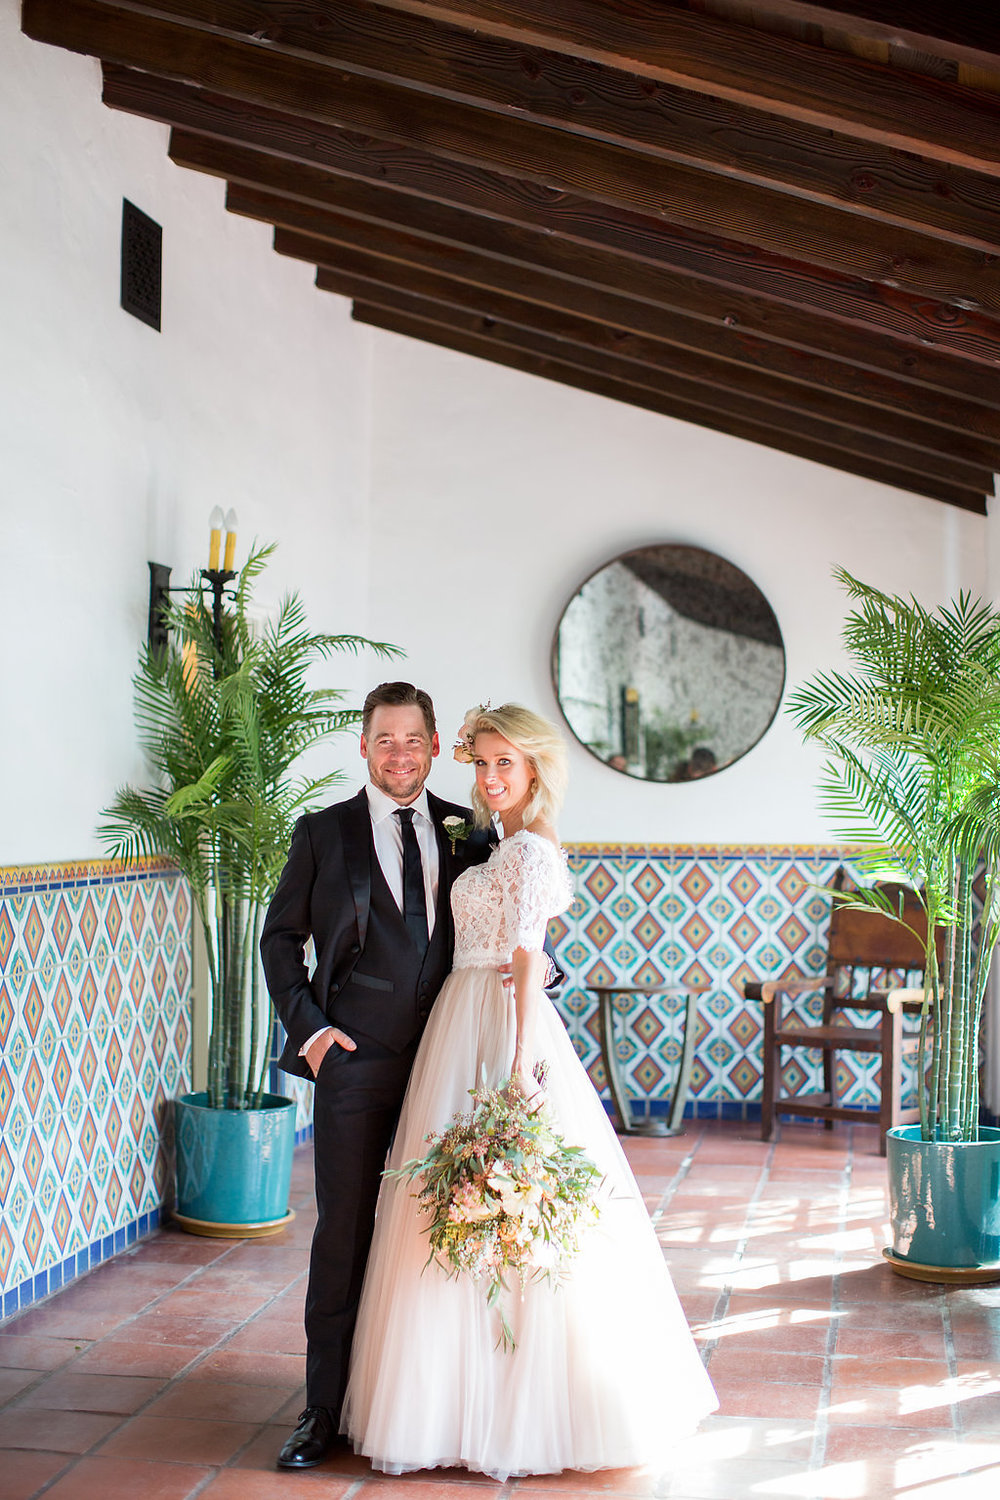 LA CHUREYA ESTATE WEDDING_BETSI EWING STUDIO 244.JPG